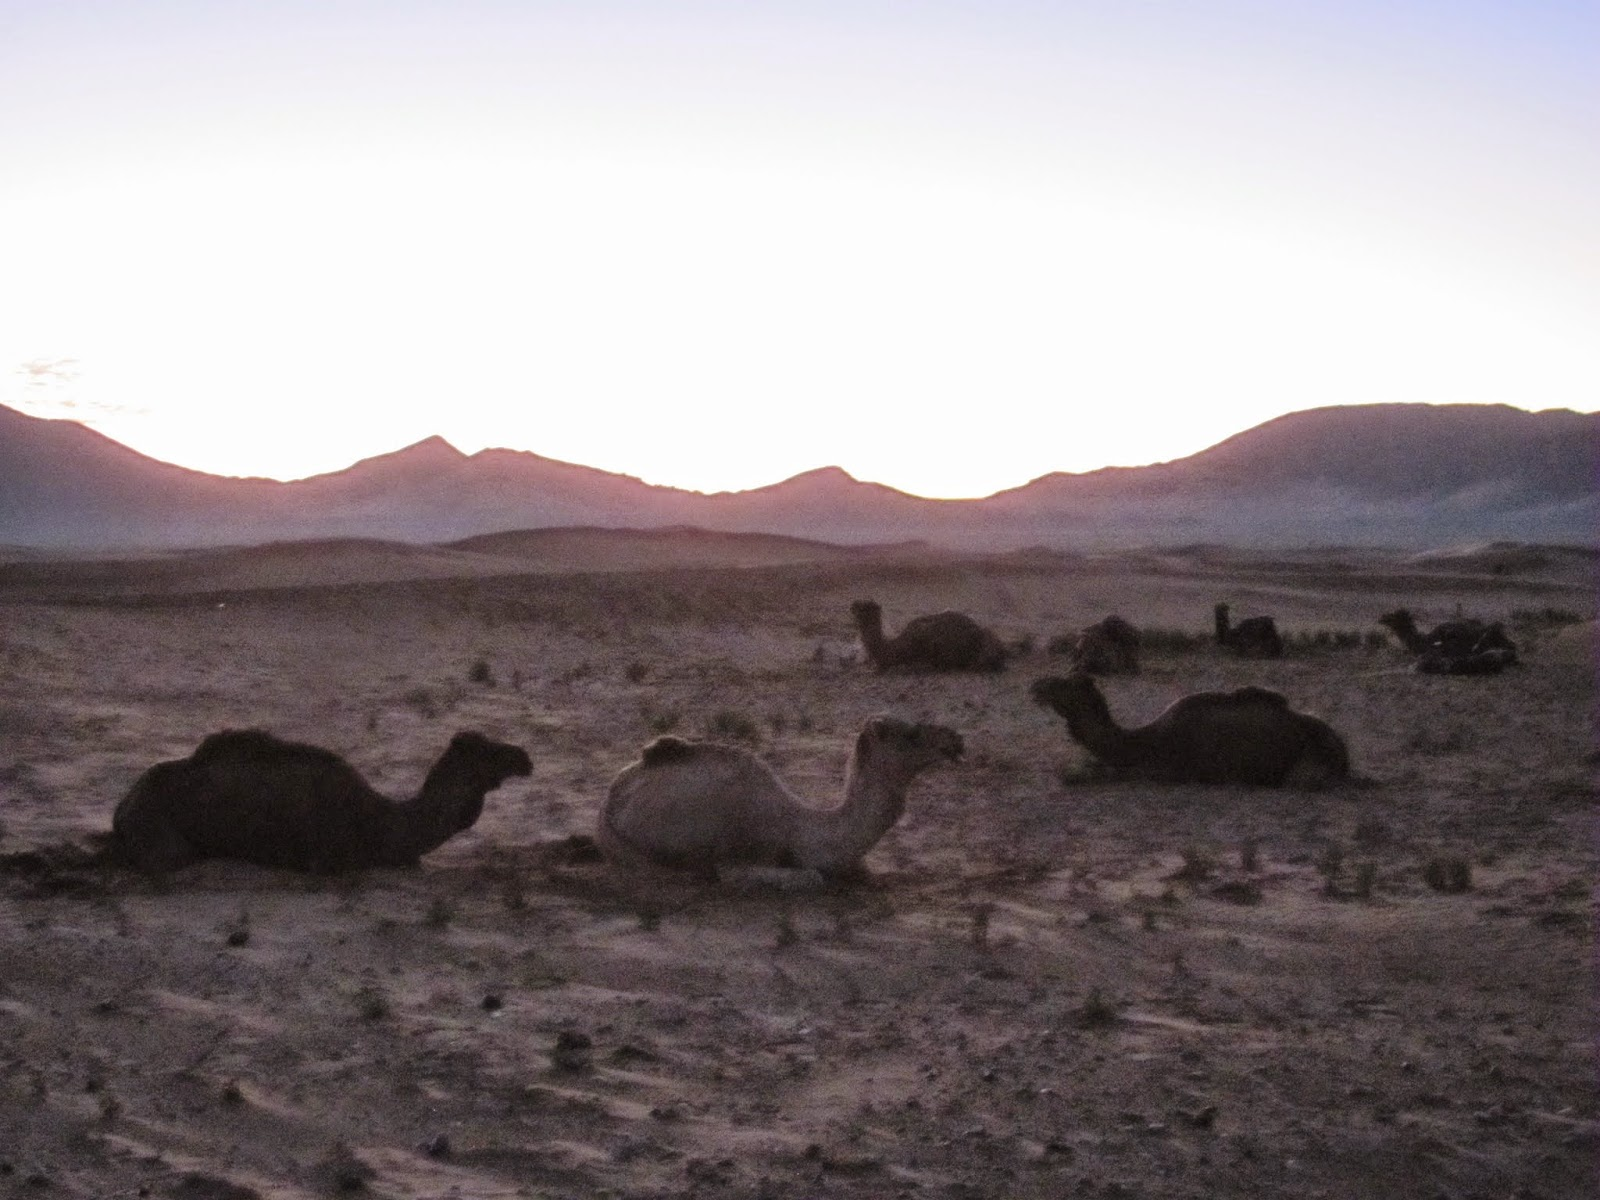 Camels Waking up at Sunrise, Zagora Morocco